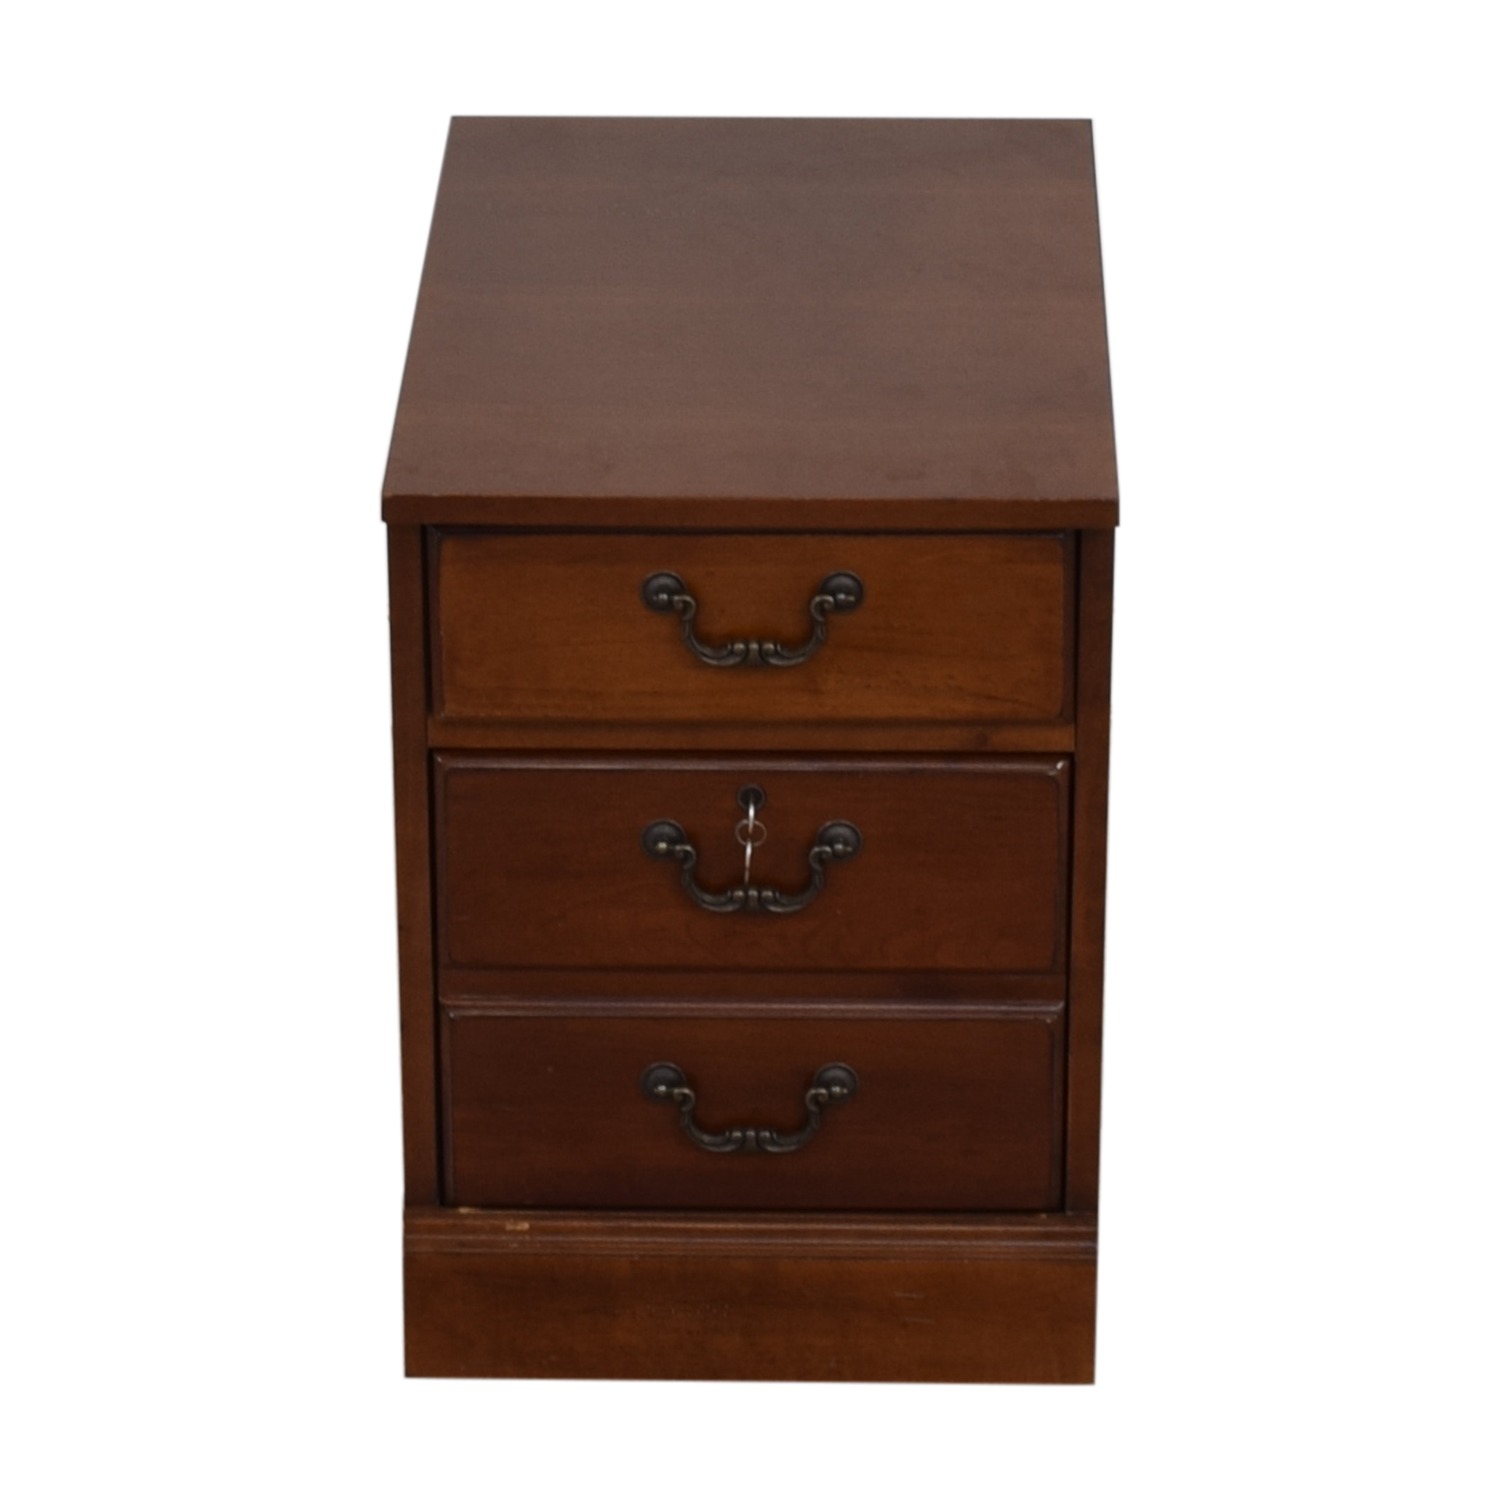 Hooker Hooker Wood Two-Drawer Filing Cabinet used